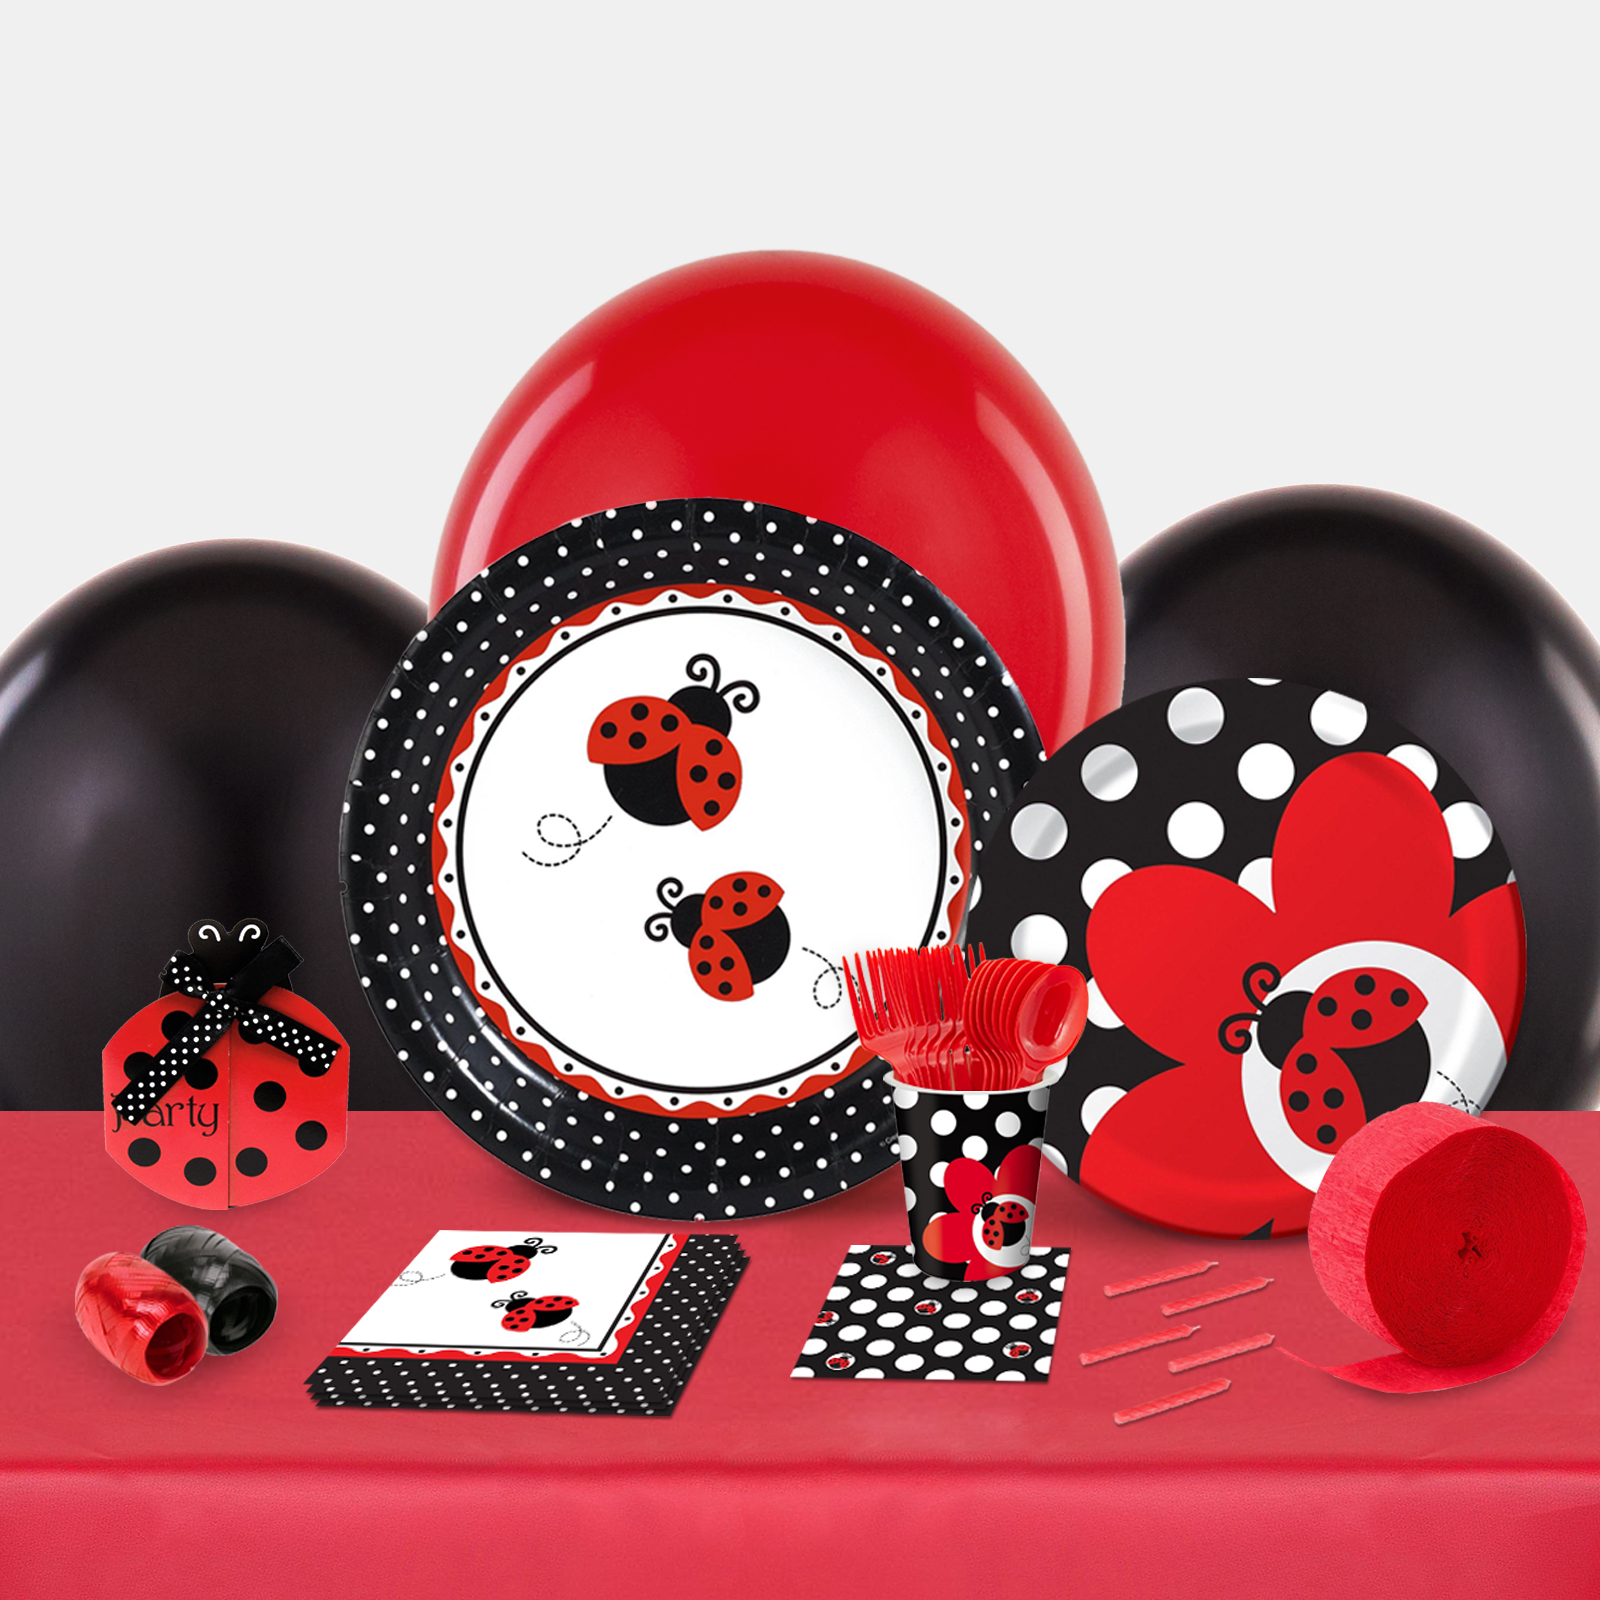 LadyBug Fancy Party in a Box-Basic